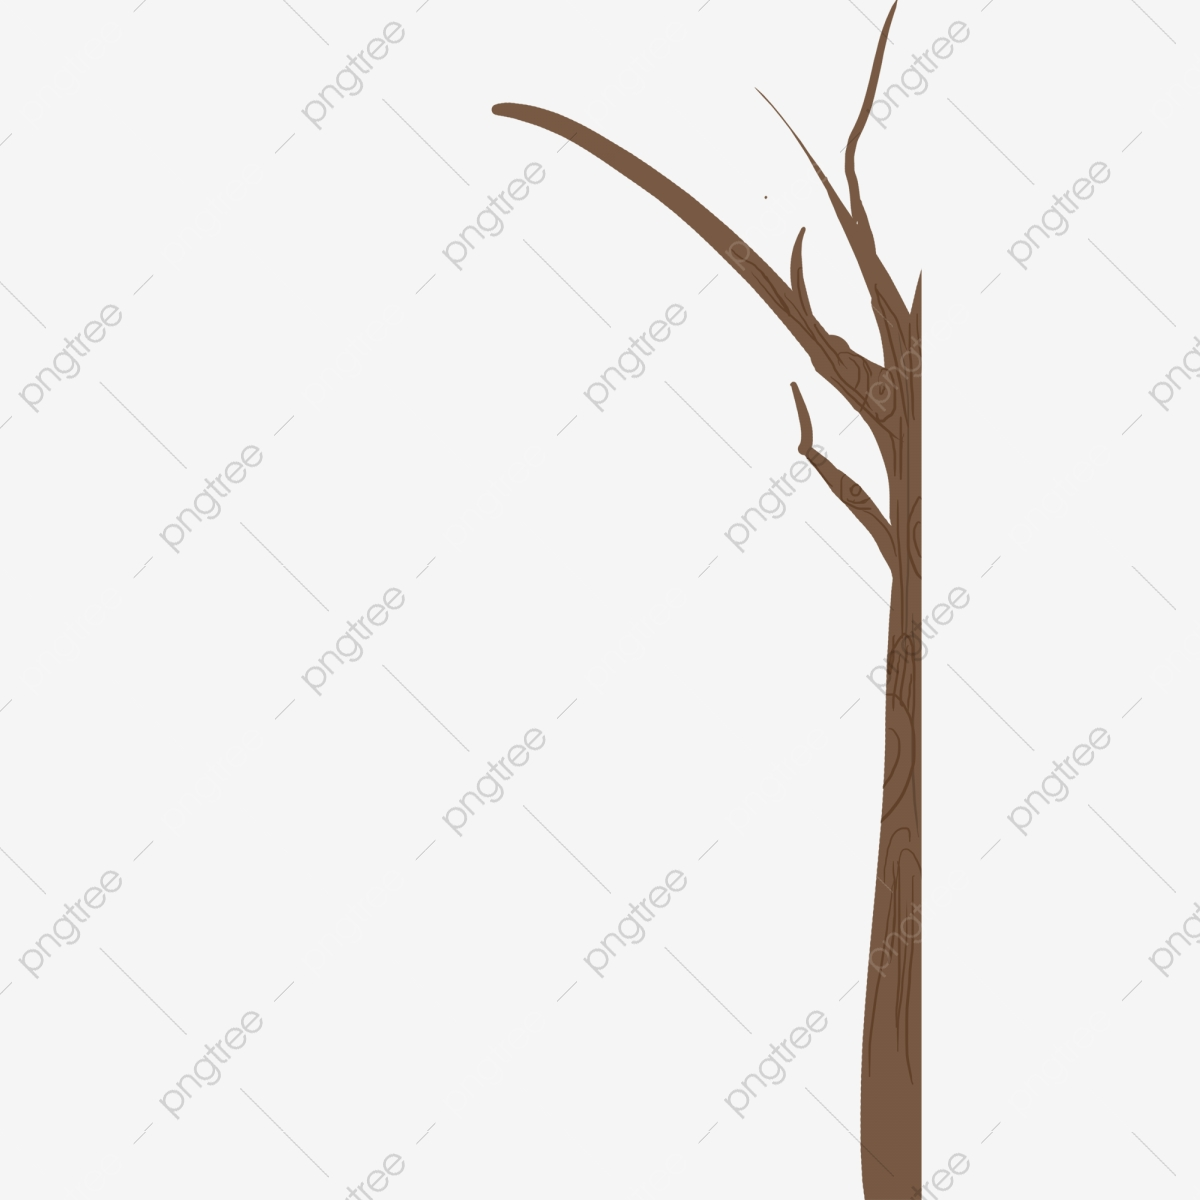 Cartoon Dead Tree Branch Tree Trunk Png Transparent Clipart Image And Psd File For Free Download Pngtree offers dead tree png and vector images, as well as transparant background dead tree clipart images and psd files. https pngtree com freepng cartoon dead tree 4597843 html